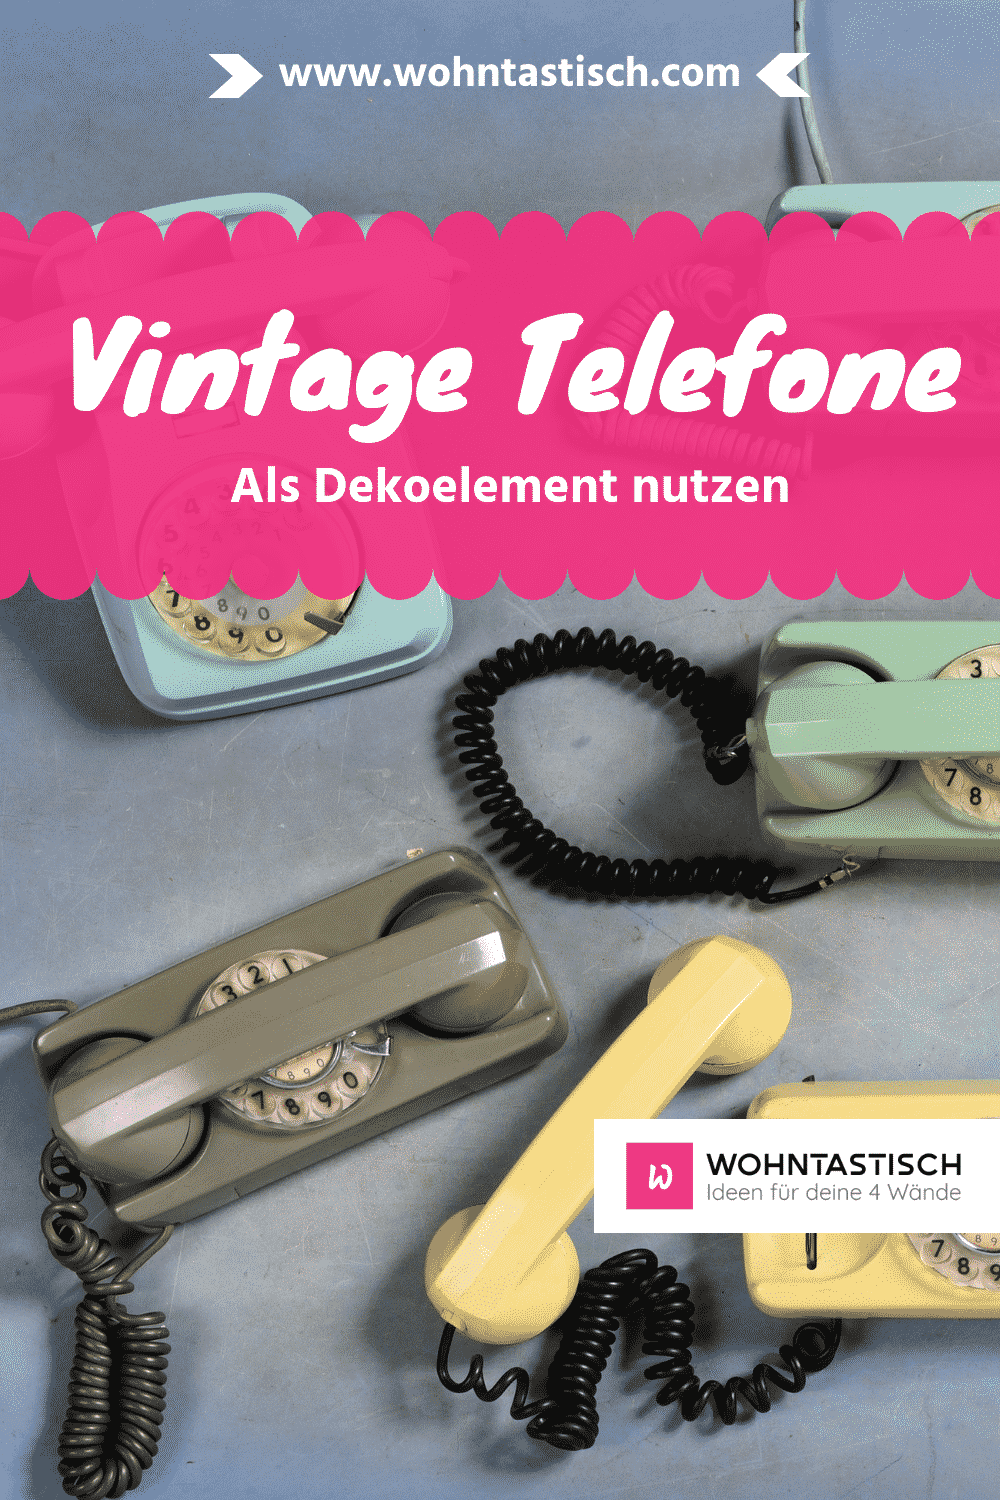 Vintage Telefone: back to Retro!